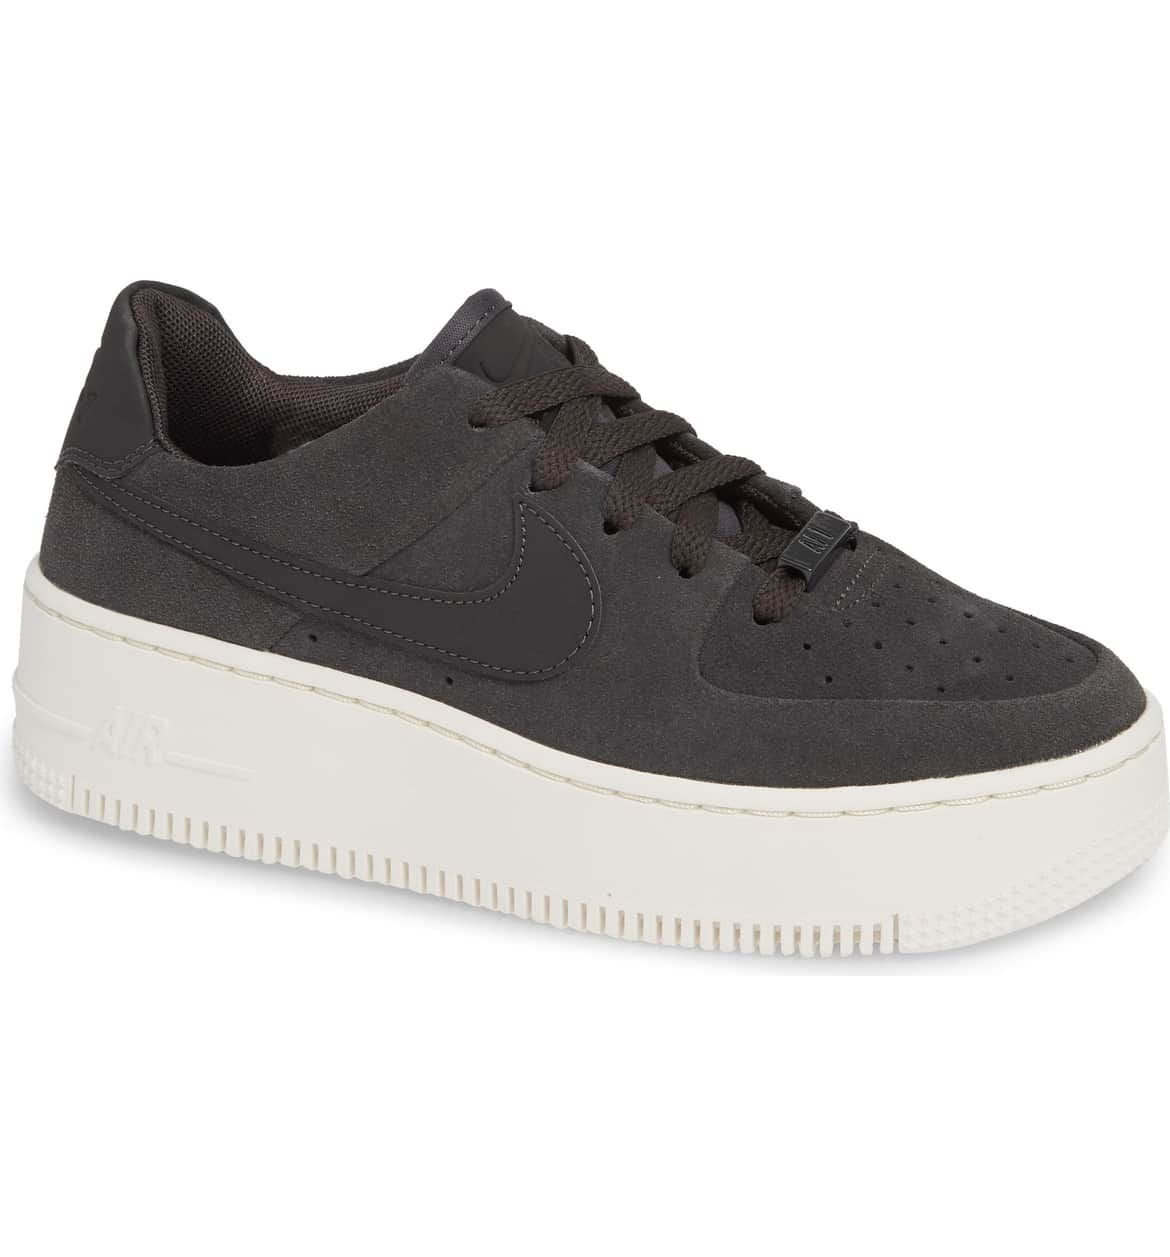 78e176a8b76 Air Force 1 Sage Low Platform Sneaker